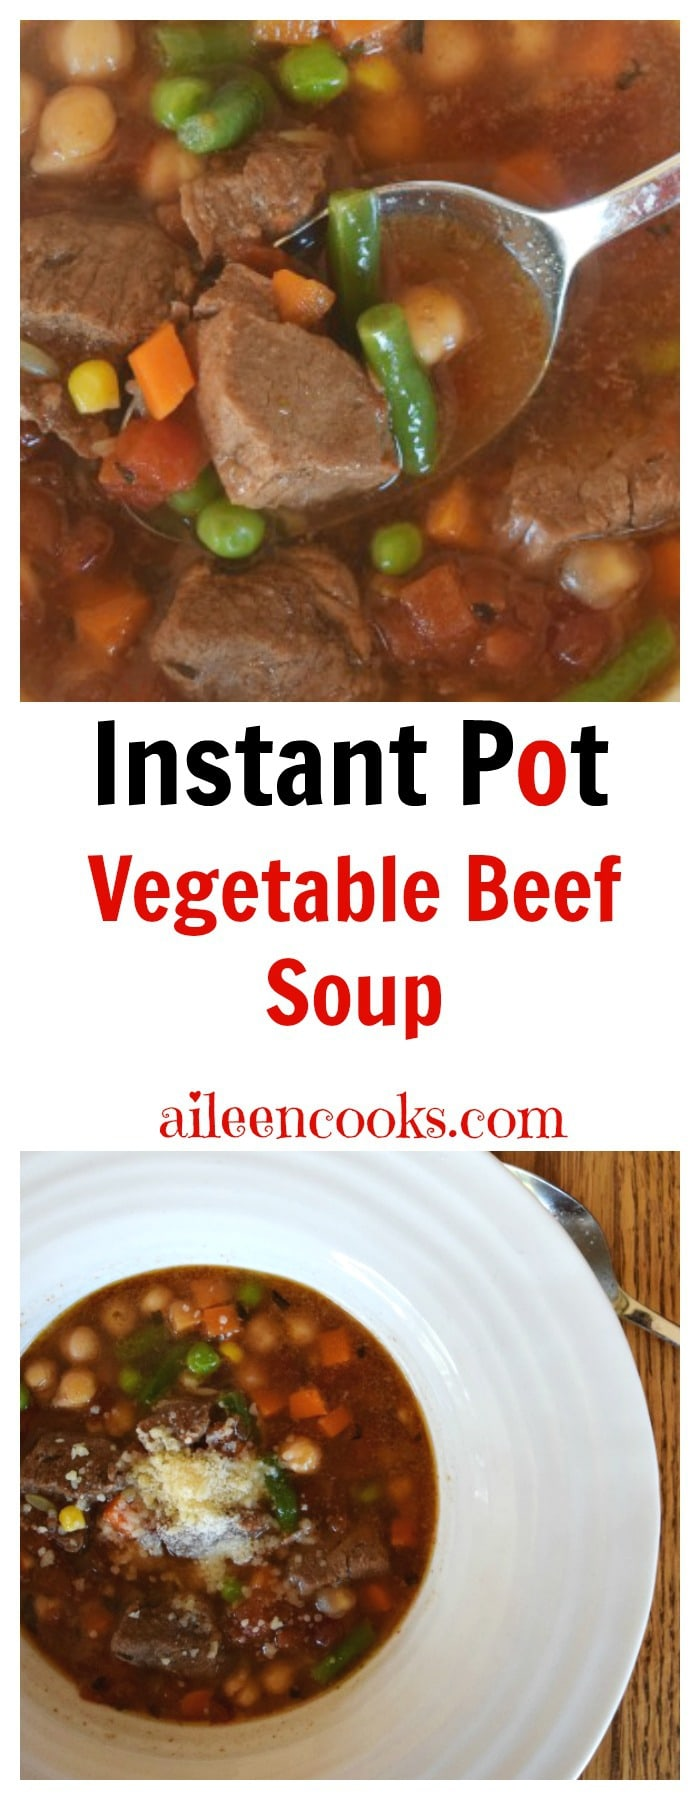 Pressure Cooker Vegetable Beef Soup Aileen Cooks